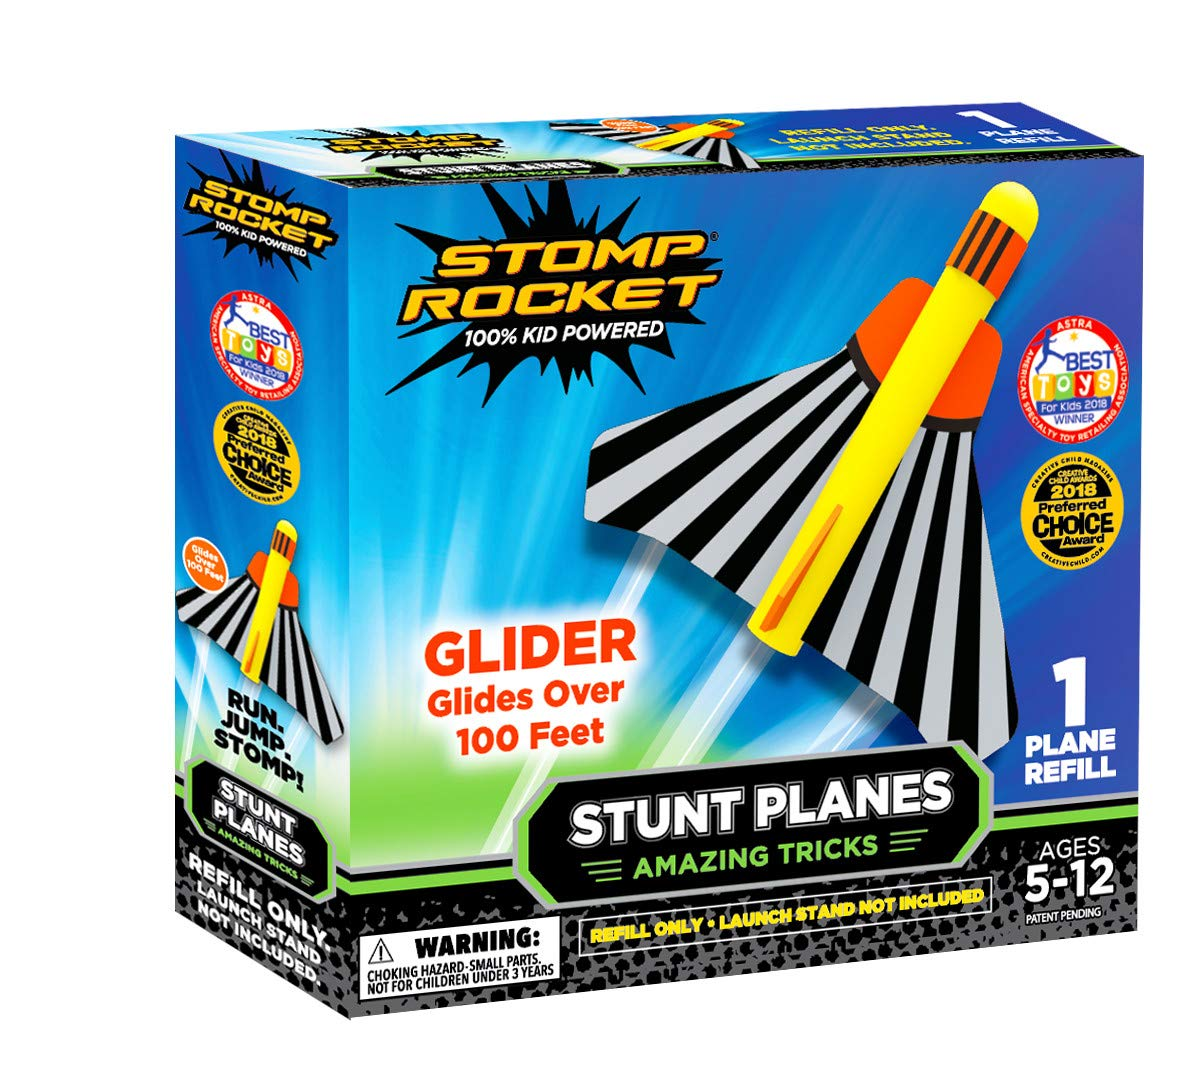 Stomp Rocket Stunt Planes Refill Pack, 1 Glider Plane, for Boys and Girls - Outdoor Rocket Gift for Ages 5 (6, 7, 8) and up